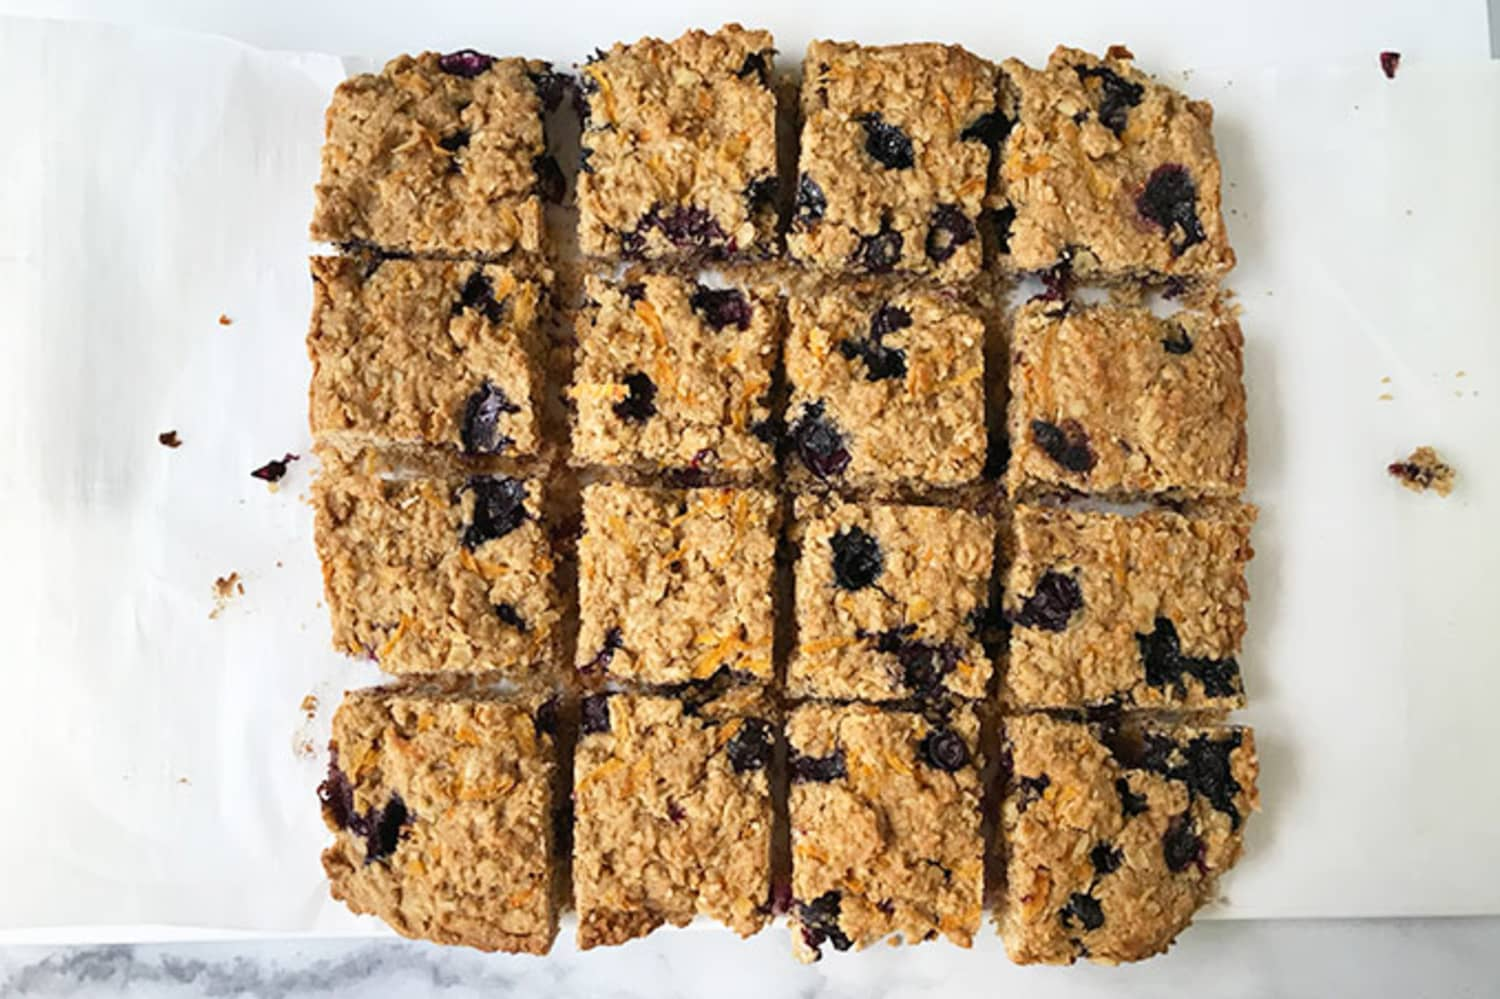 These Kid-Friendly Oatmeal Bars Are Packed with Blueberries and Carrots